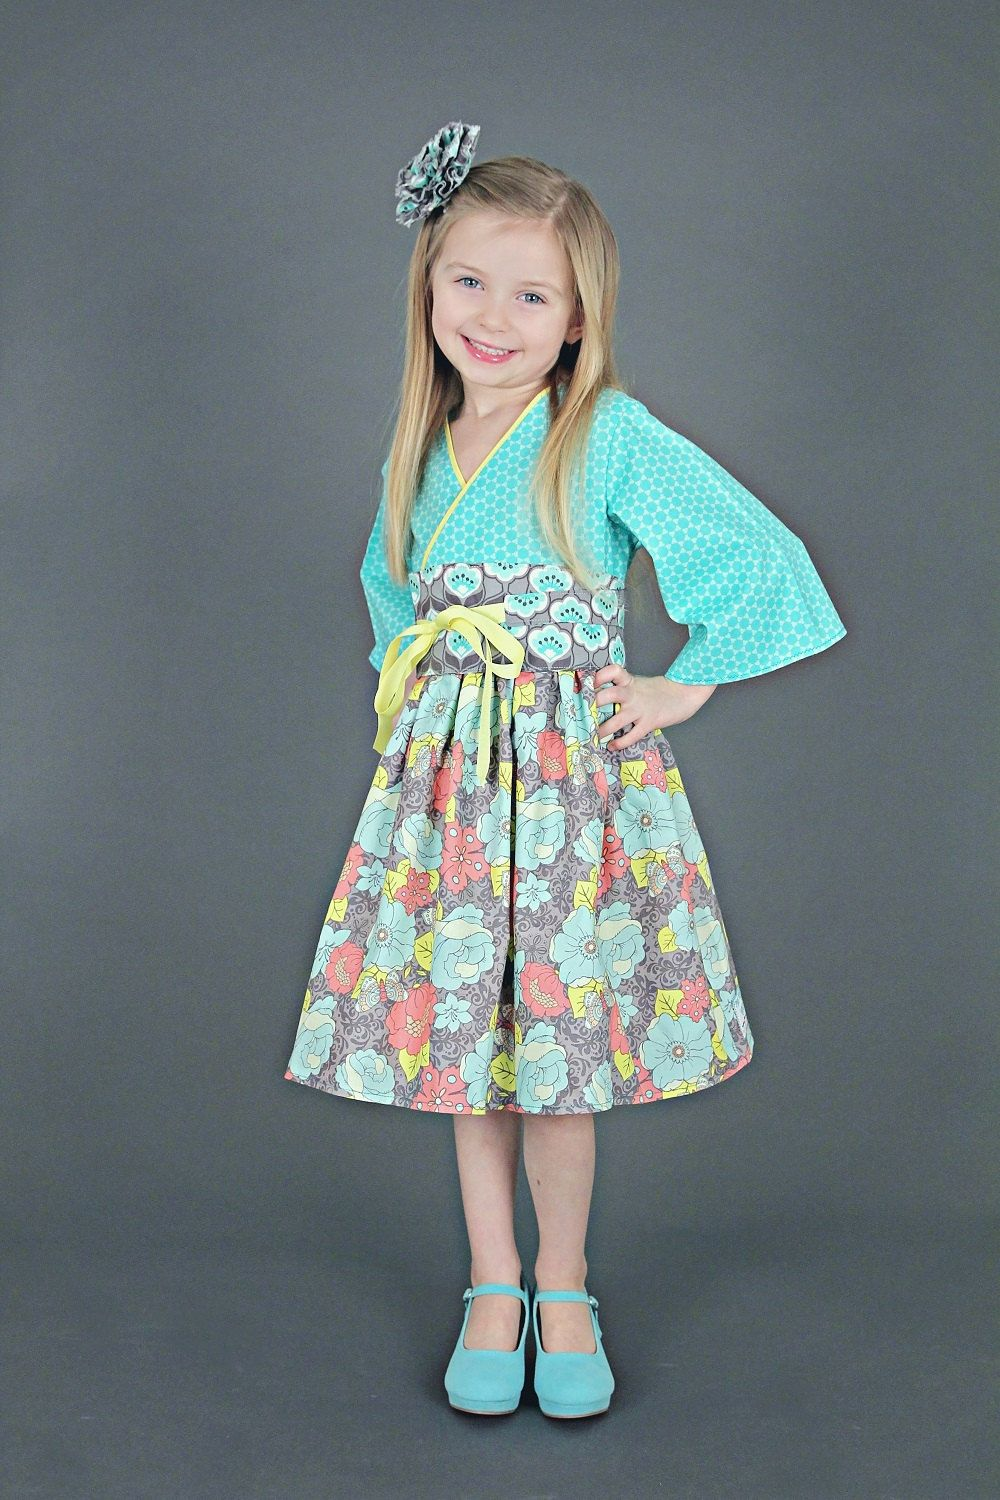 Little Girls Dress - Toddler Birthday Clothes - Tiffany Blue ...